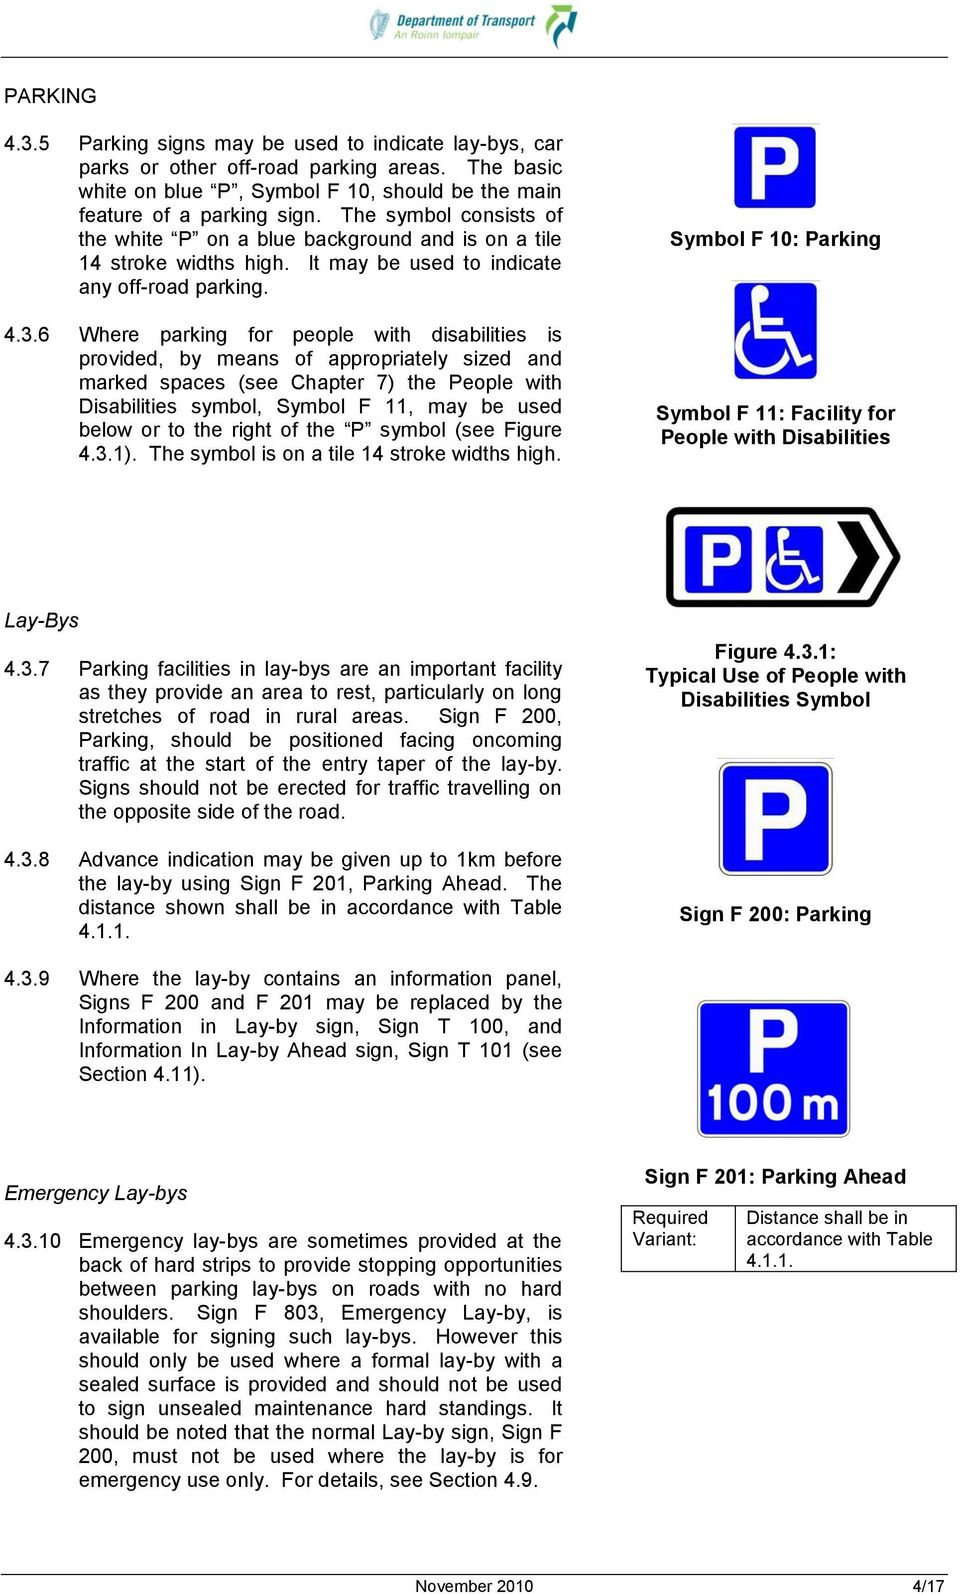 6 Where parking for people with disabilities is provided, by means of appropriately sized and marked spaces (see Chapter 7) the People with Disabilities symbol, Symbol F 11, may be used below or to